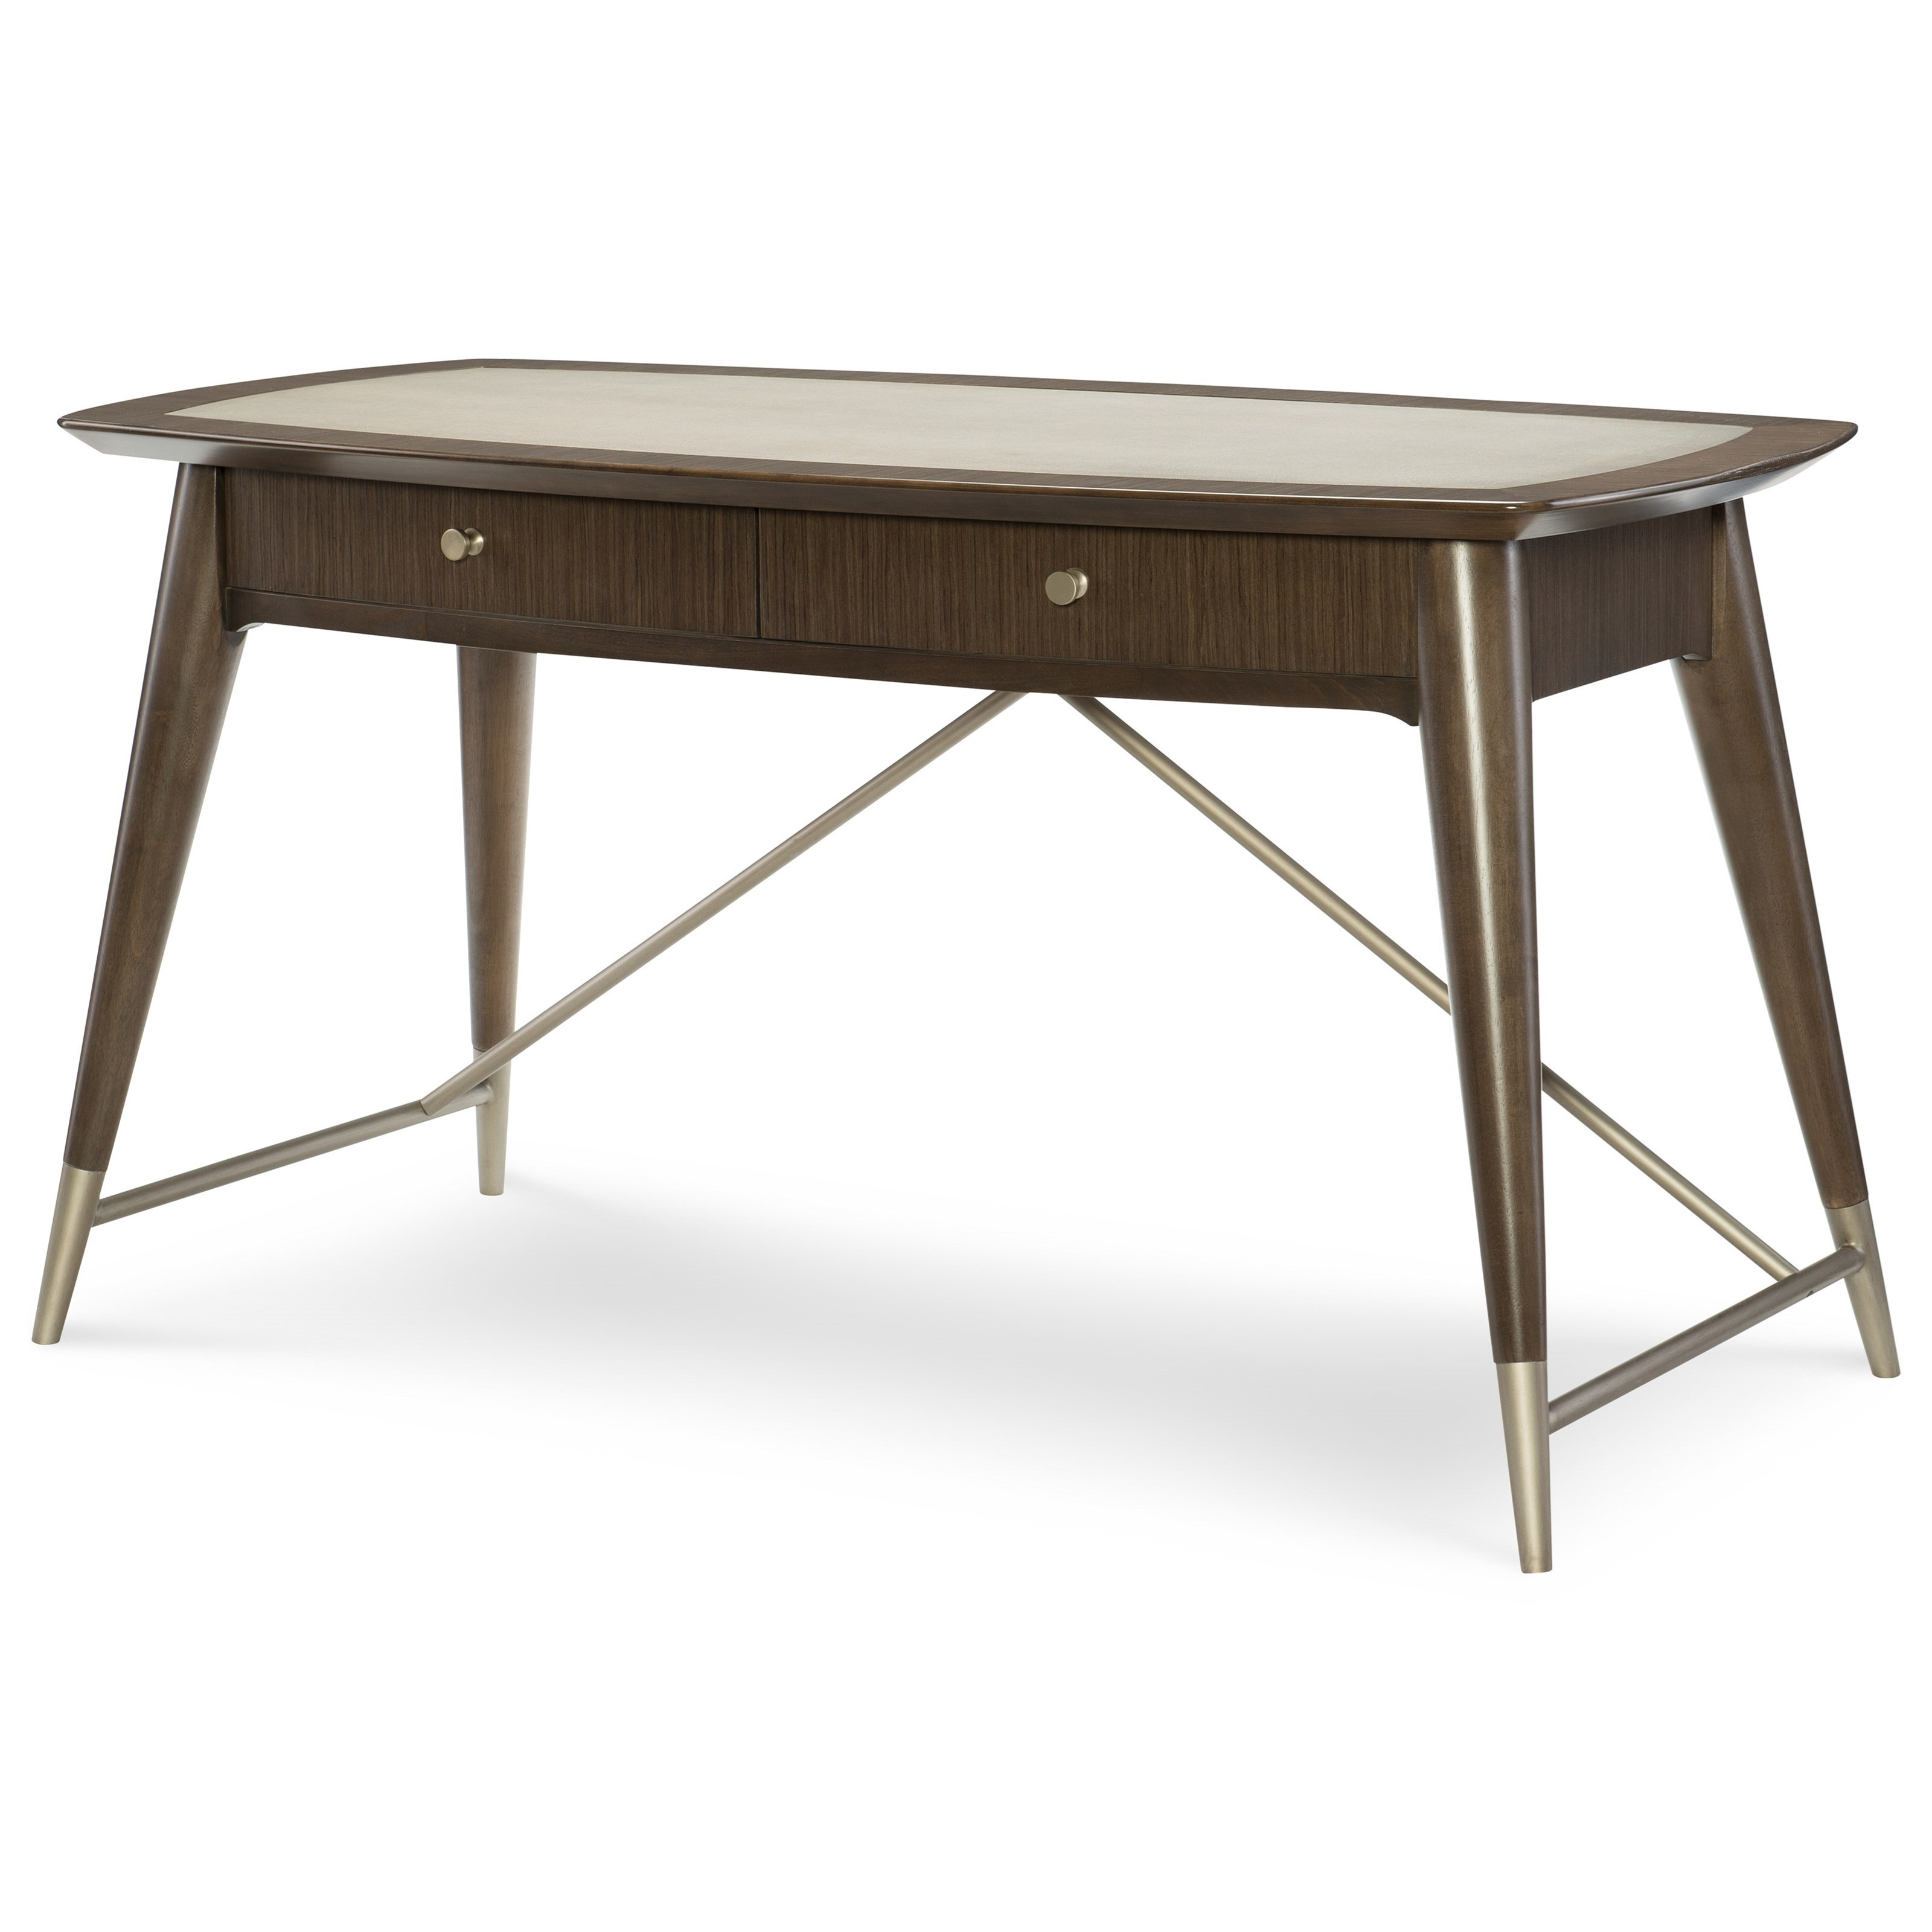 Rachael Ray Home by Legacy Classic Soho Writing Desk Table - Item Number: 6020-509